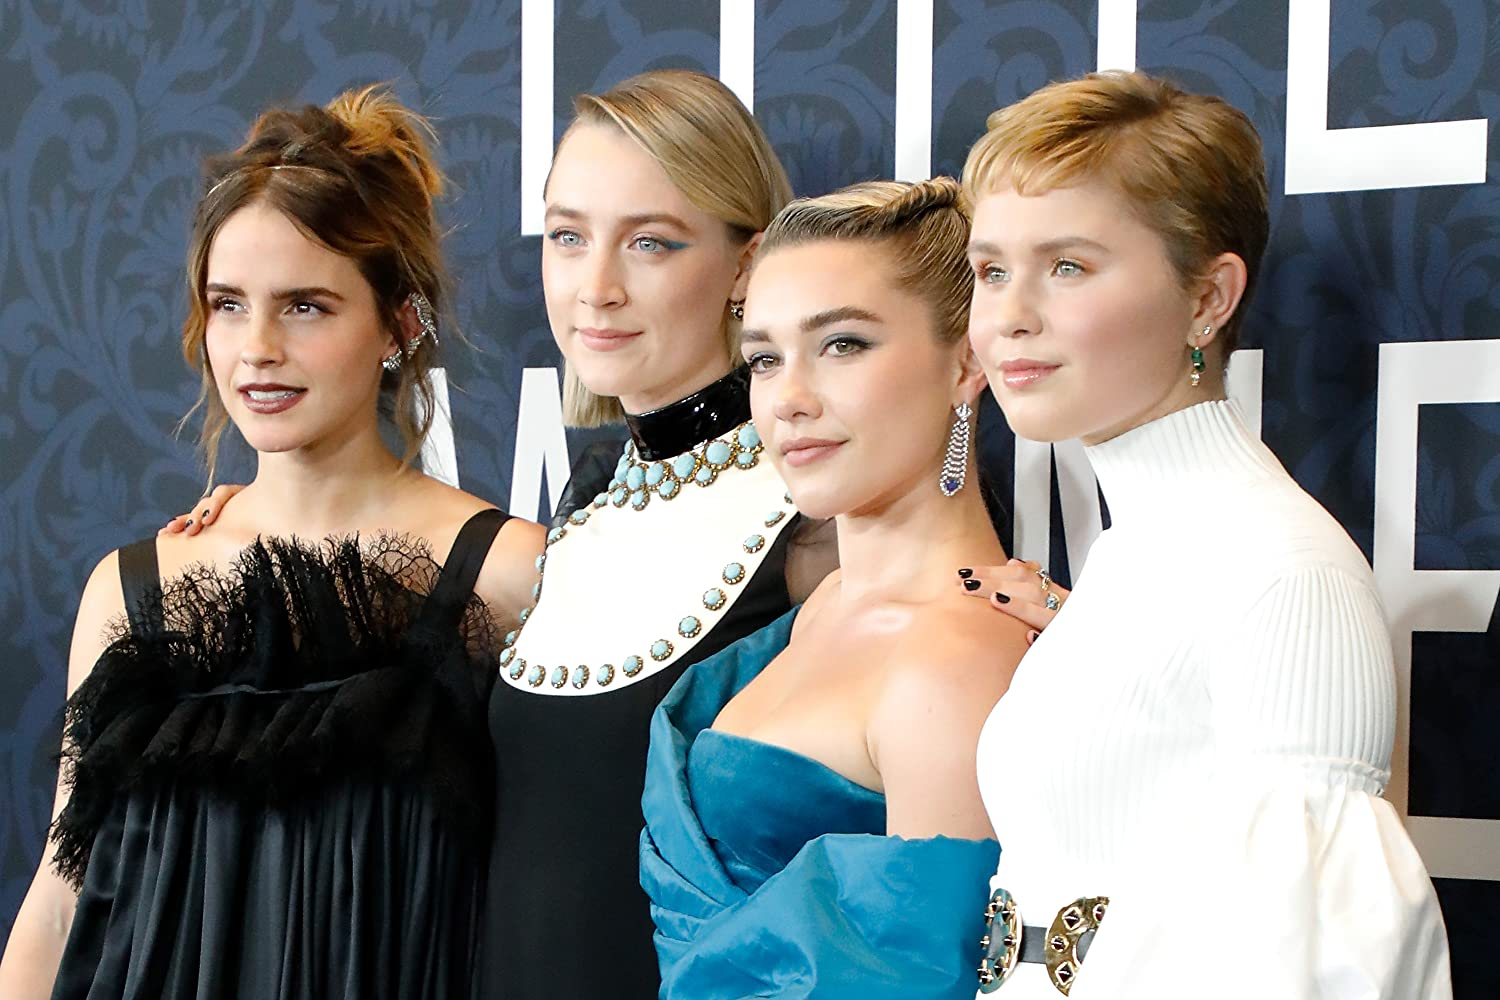 Emma Watson, Saoirse Ronan, Florence Pugh, and Eliza Scanlen at an event for Little Women (2019)